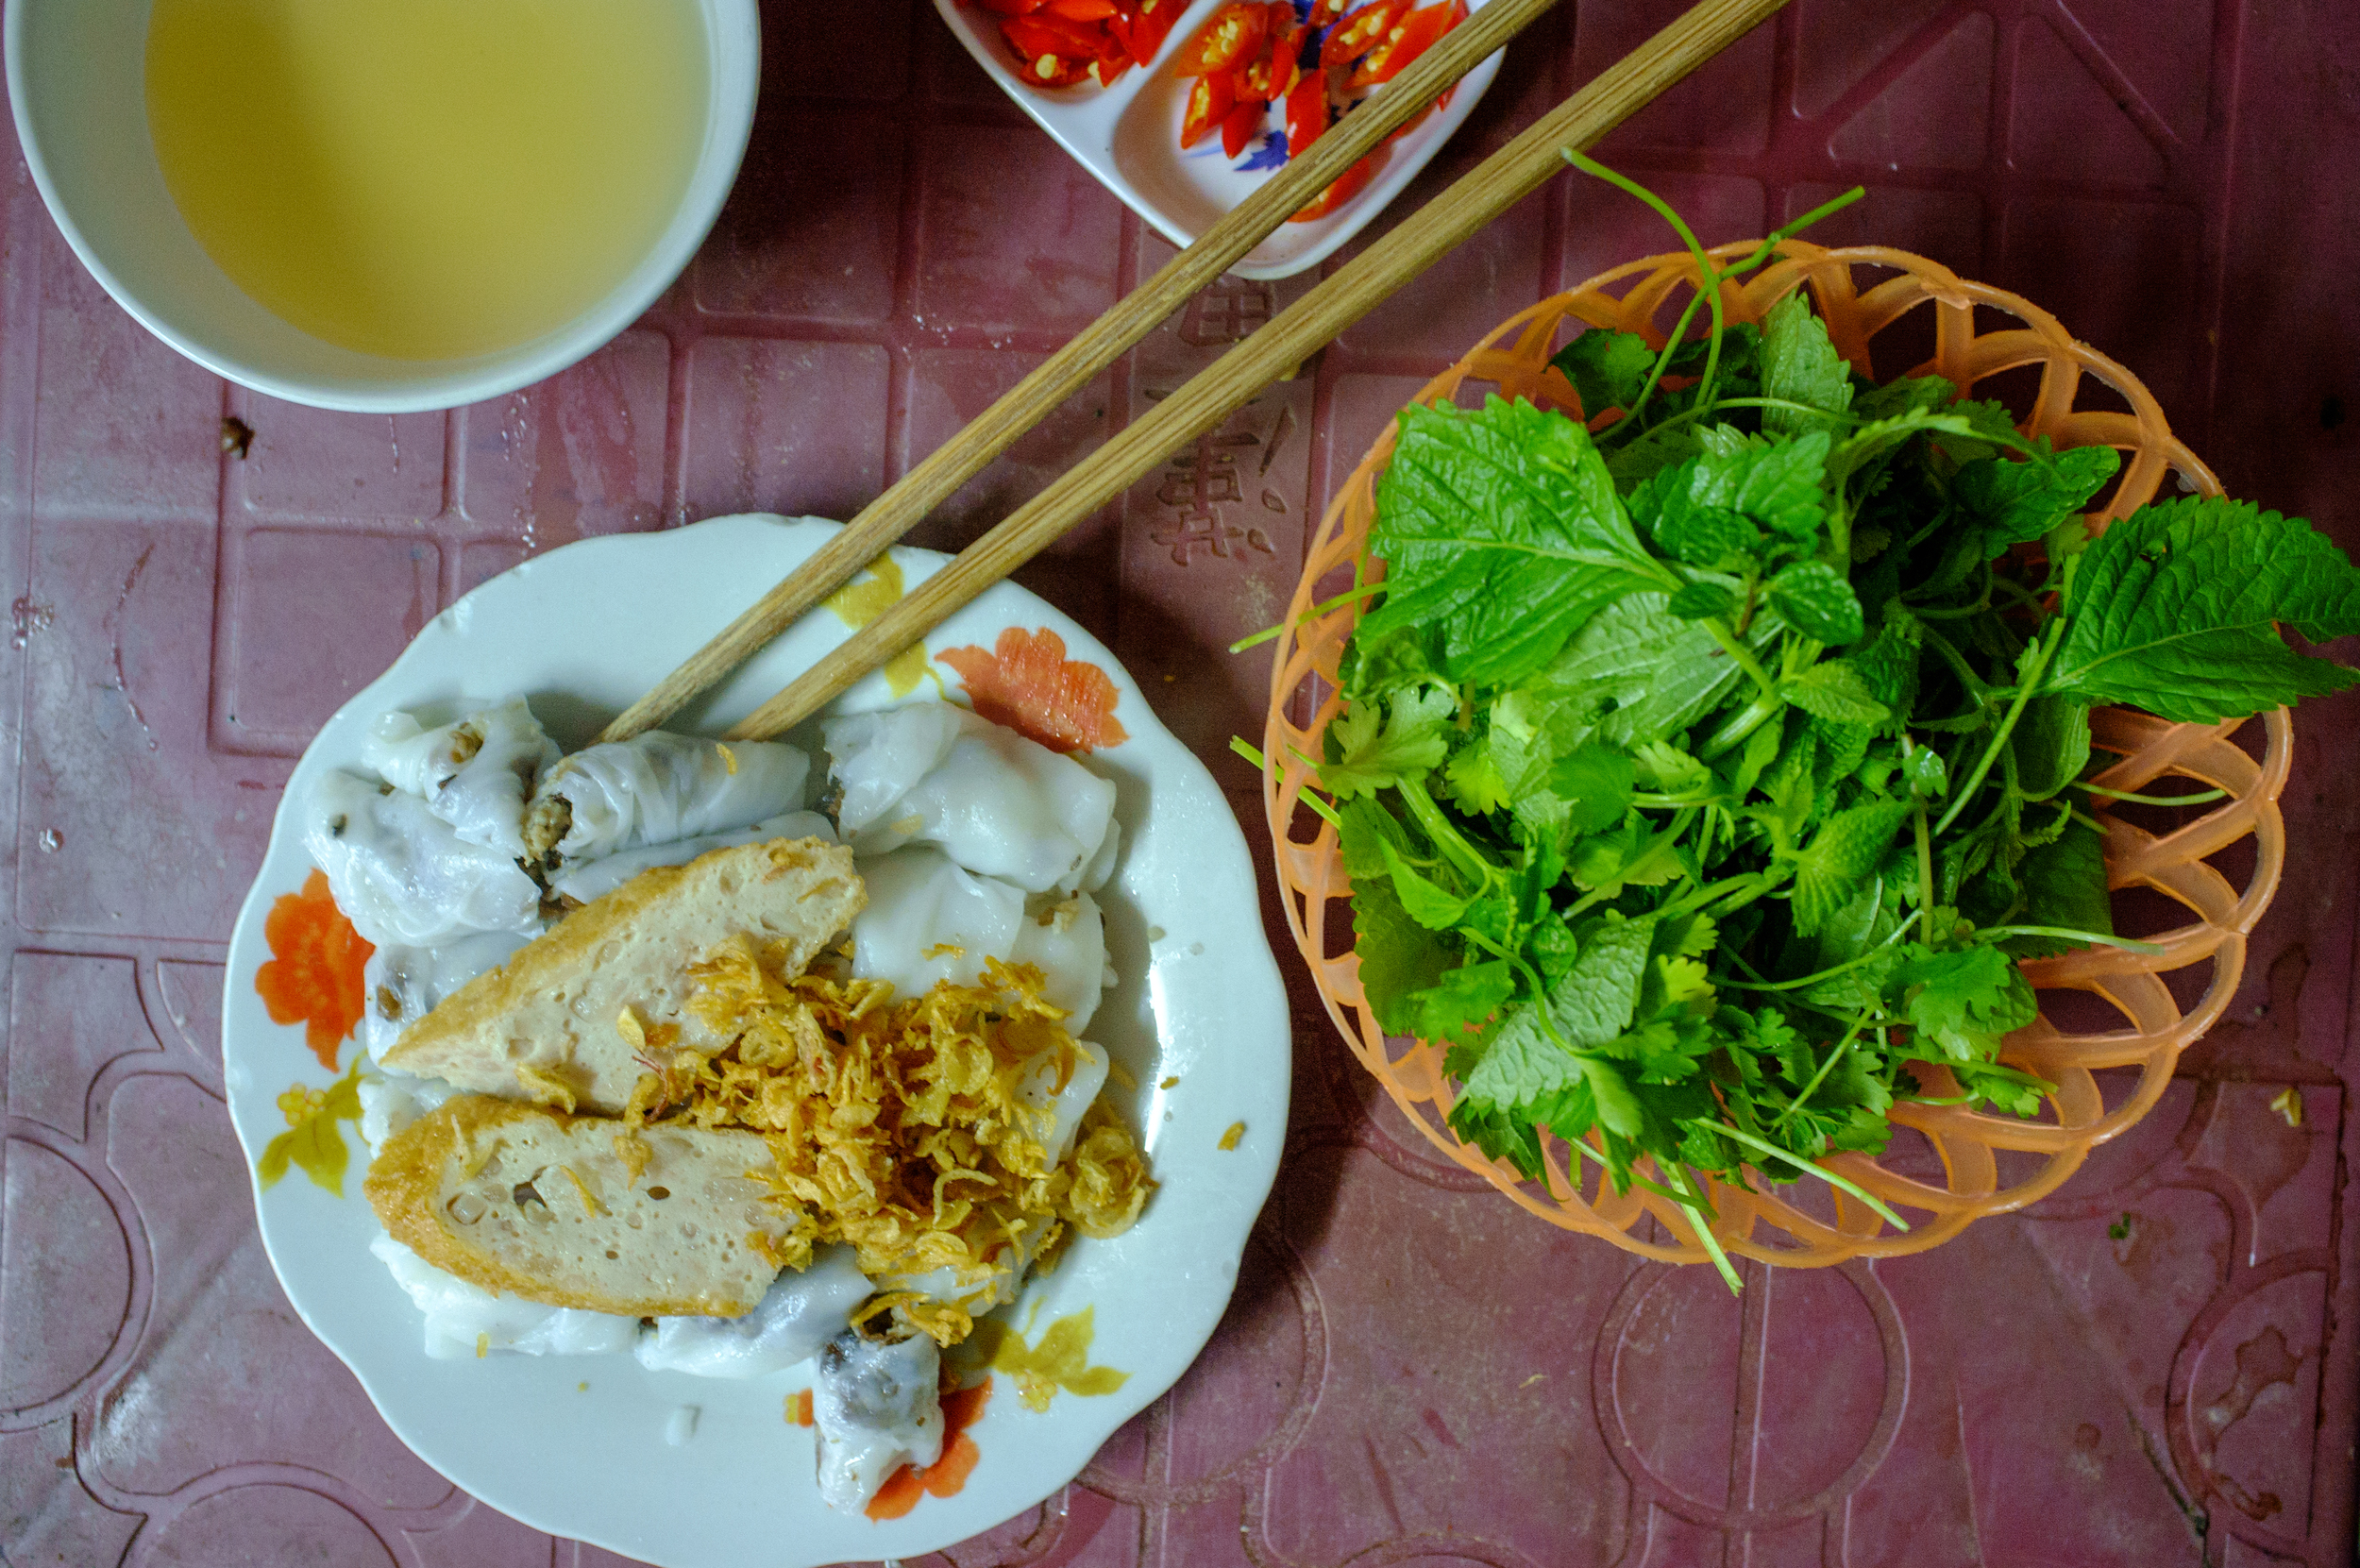 Bánh cuốn  is a common breakfast food